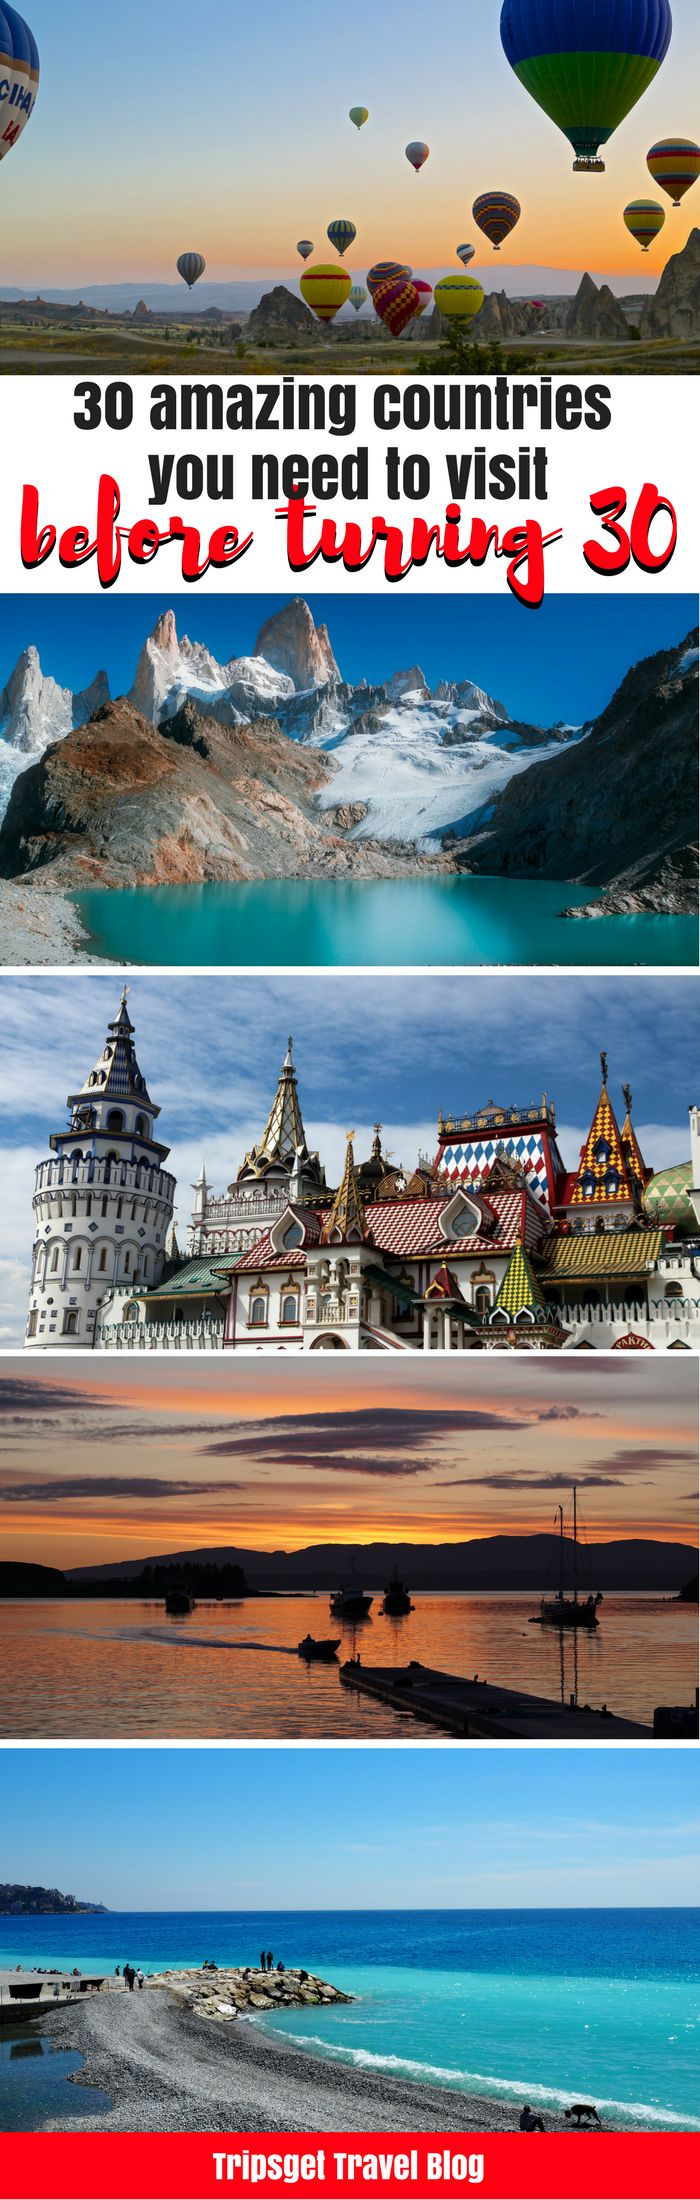 30 countries need to visit before you turn 30: Cuba, Argentina, Russia, Turkey, Indonesia, Cambodia, Peru, India, Italy, France, Germany, Vietnam